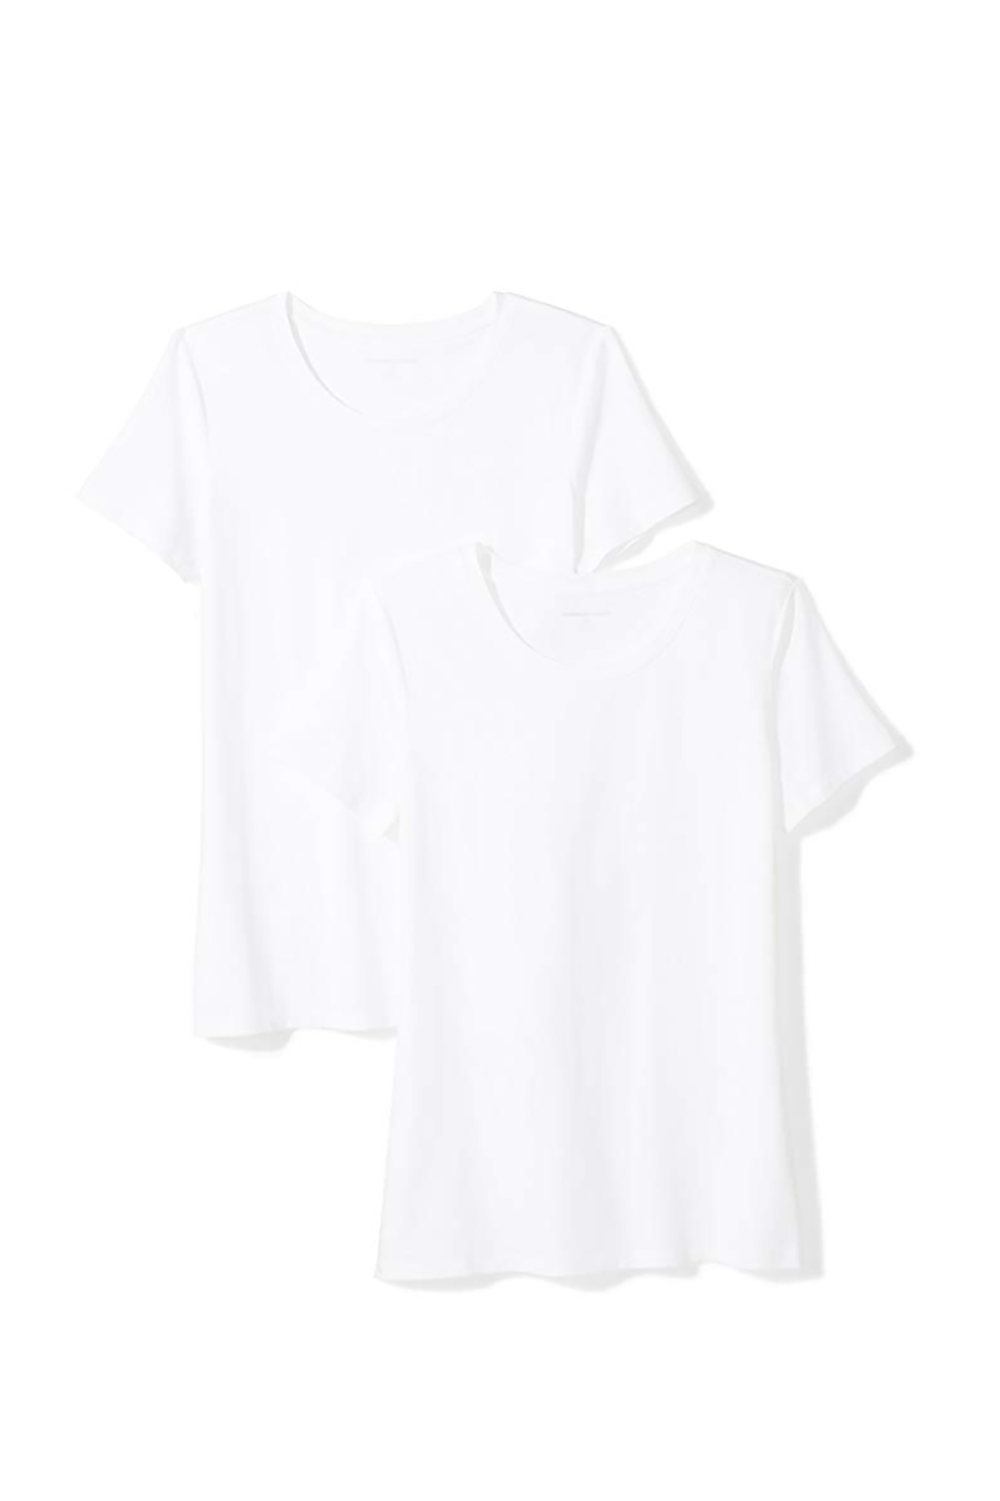 845d9168 The Best White T-Shirts on Amazon for Women, According to Reviewers